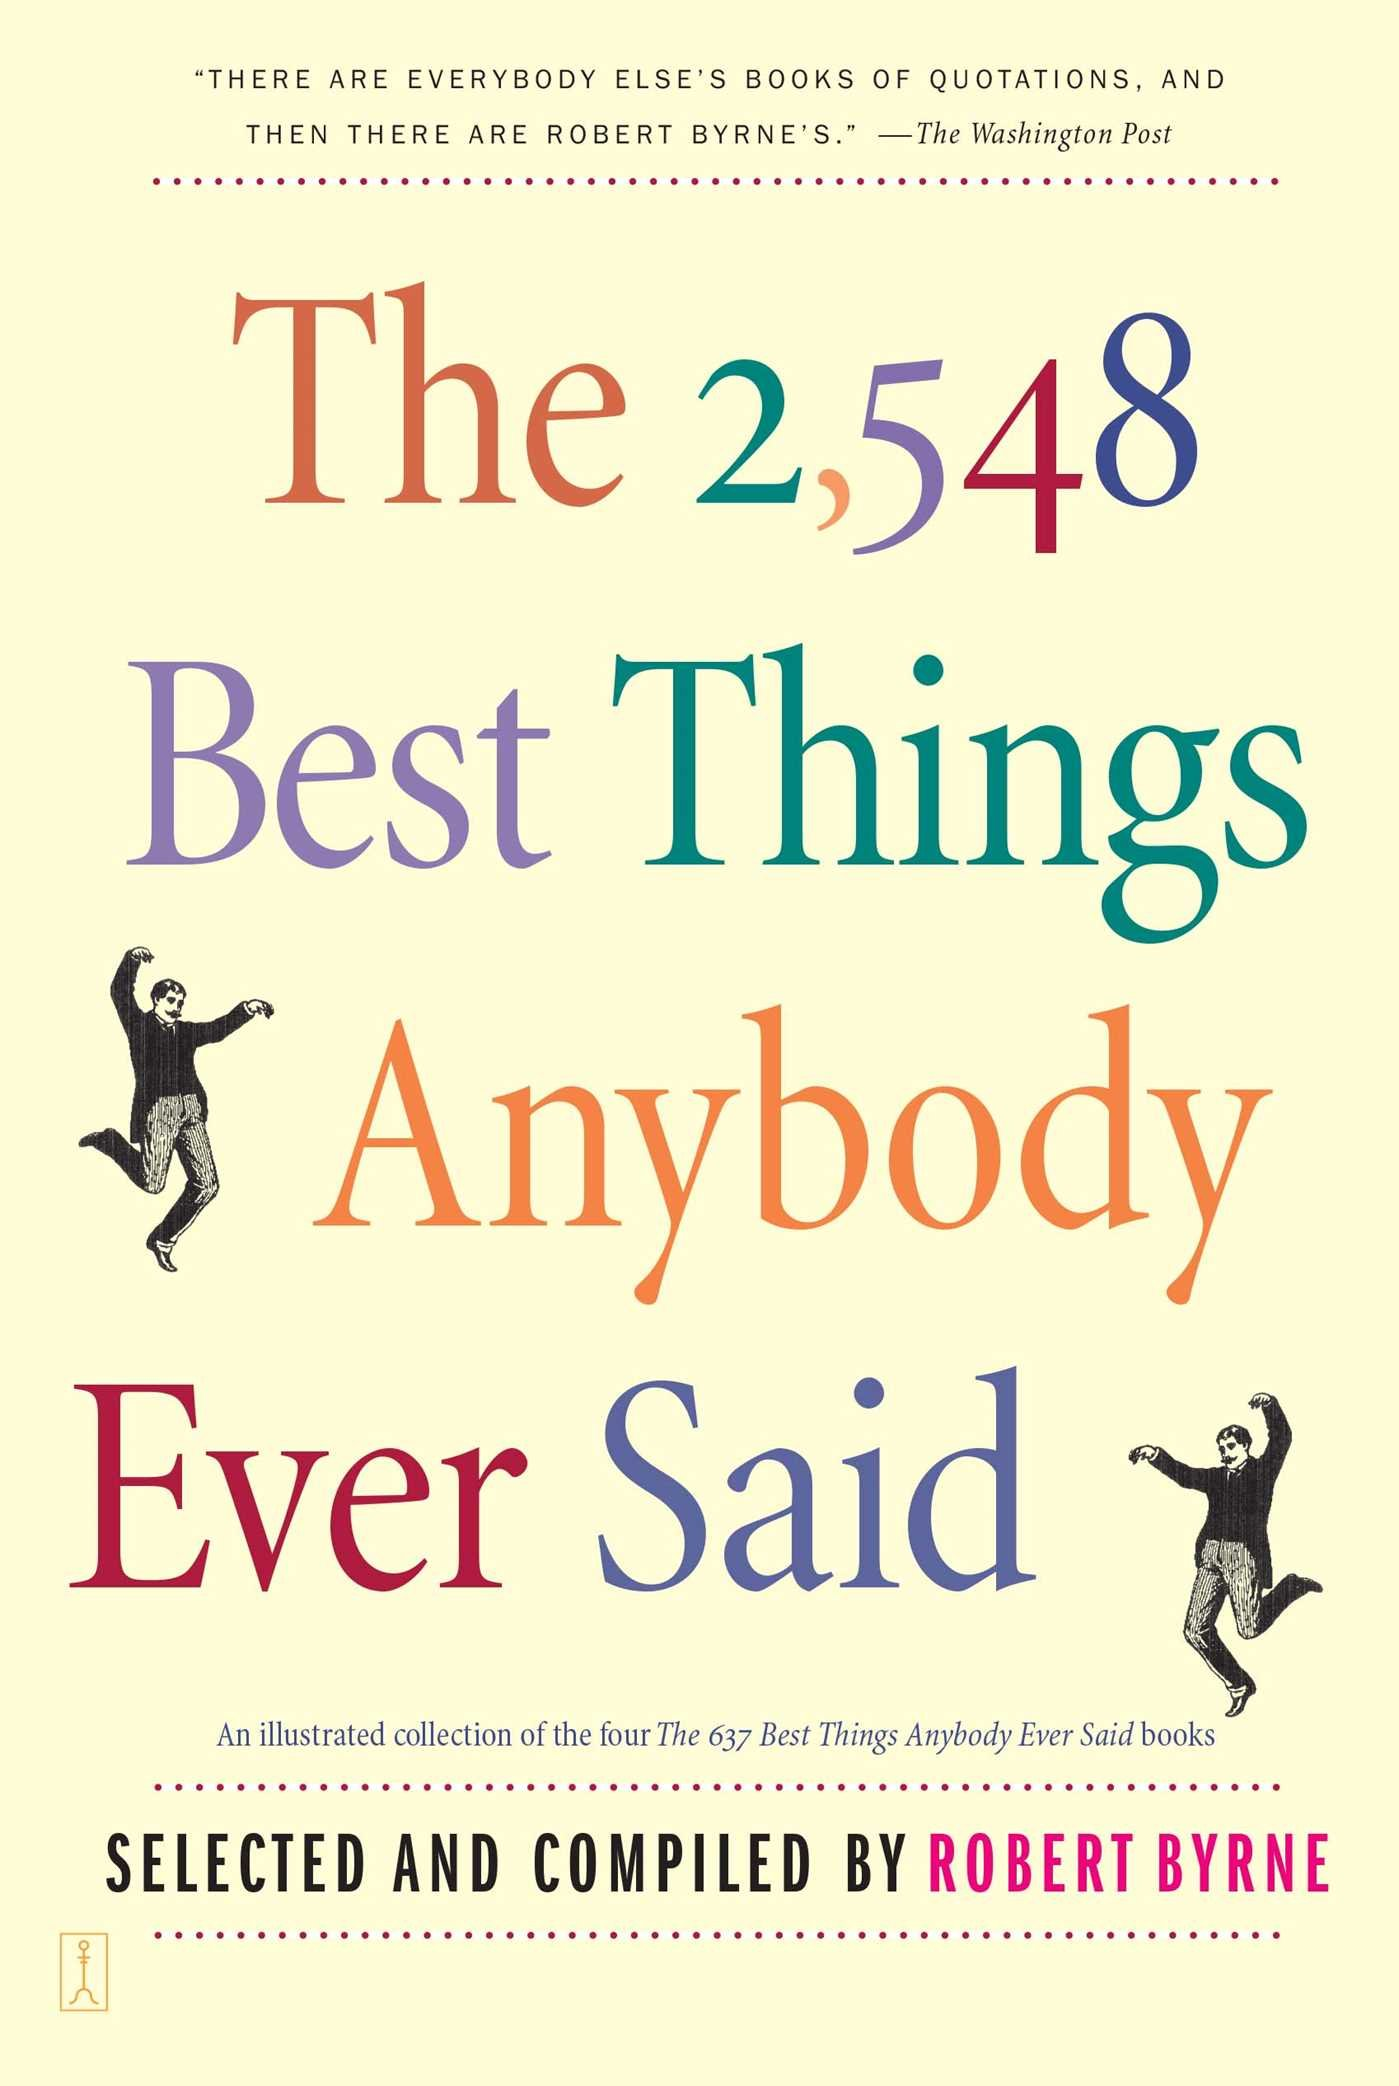 The 2,548 Best Things Anybody Ever Said by Touchstone